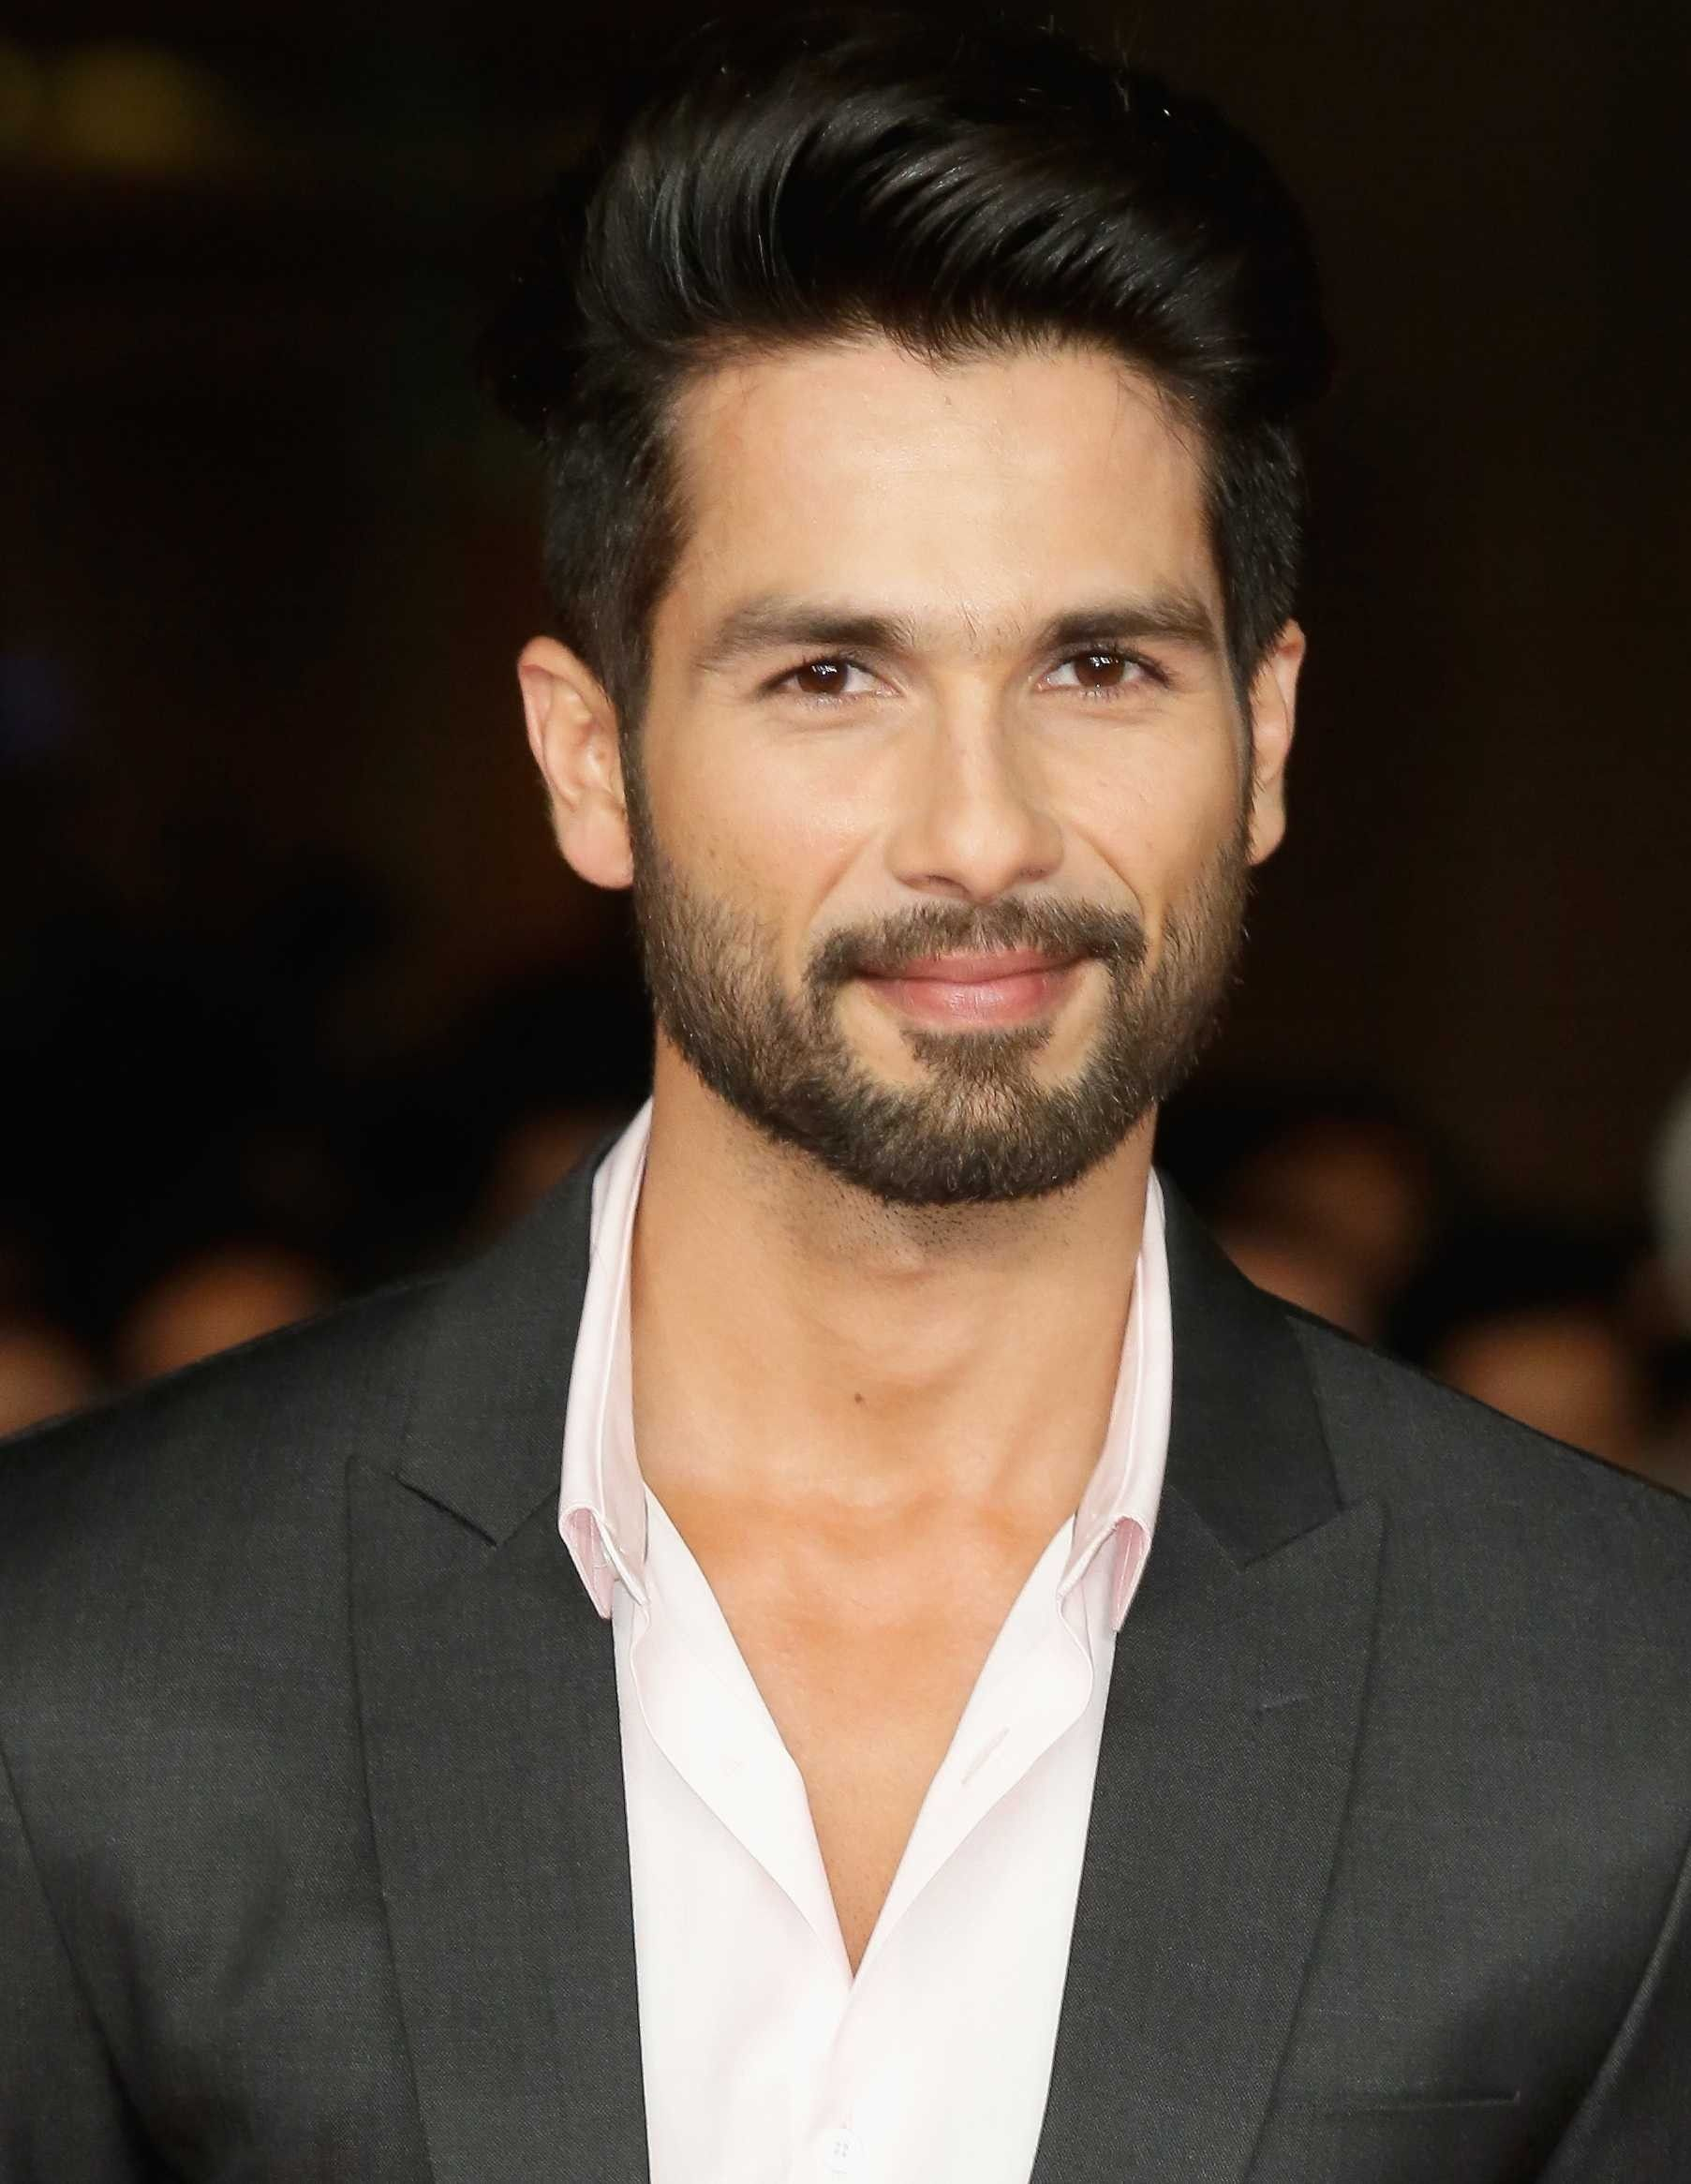 Long Hairstyles Men Indian In 2020 Cool Hairstyles For Men Indian Hairstyles Men Mens Hairstyle Images